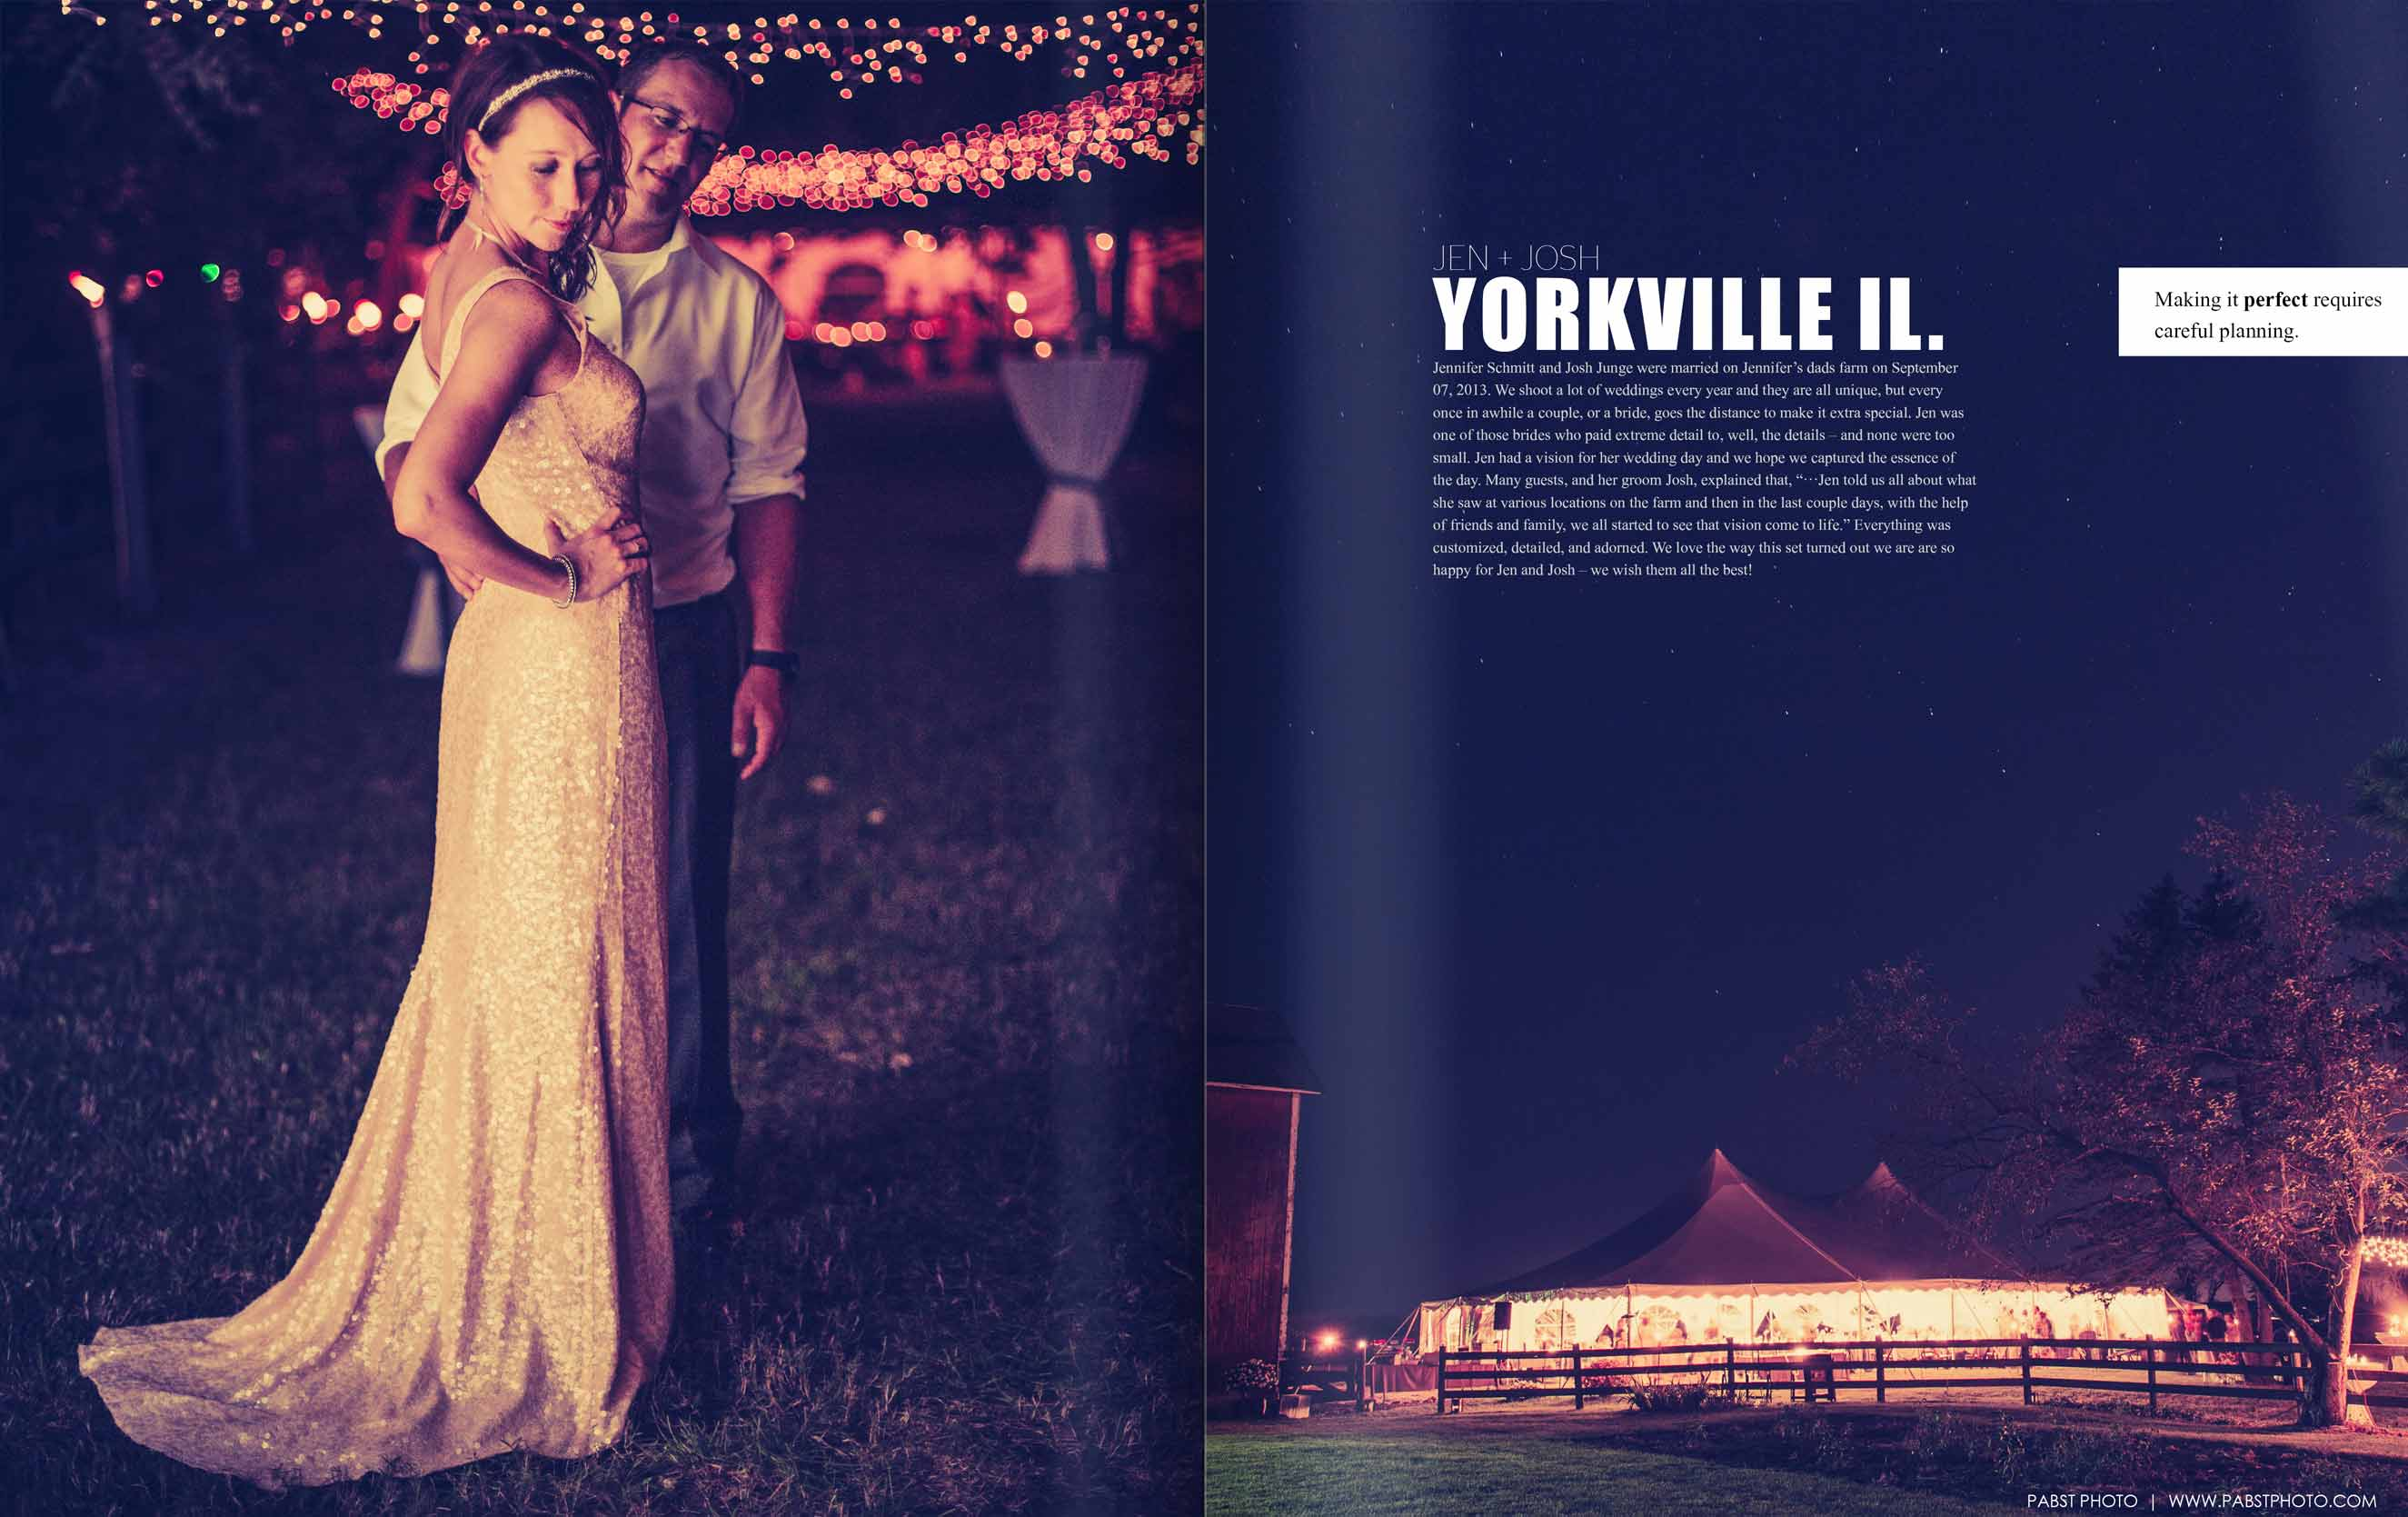 yorkville-wedding-photography-editorial-farm-02